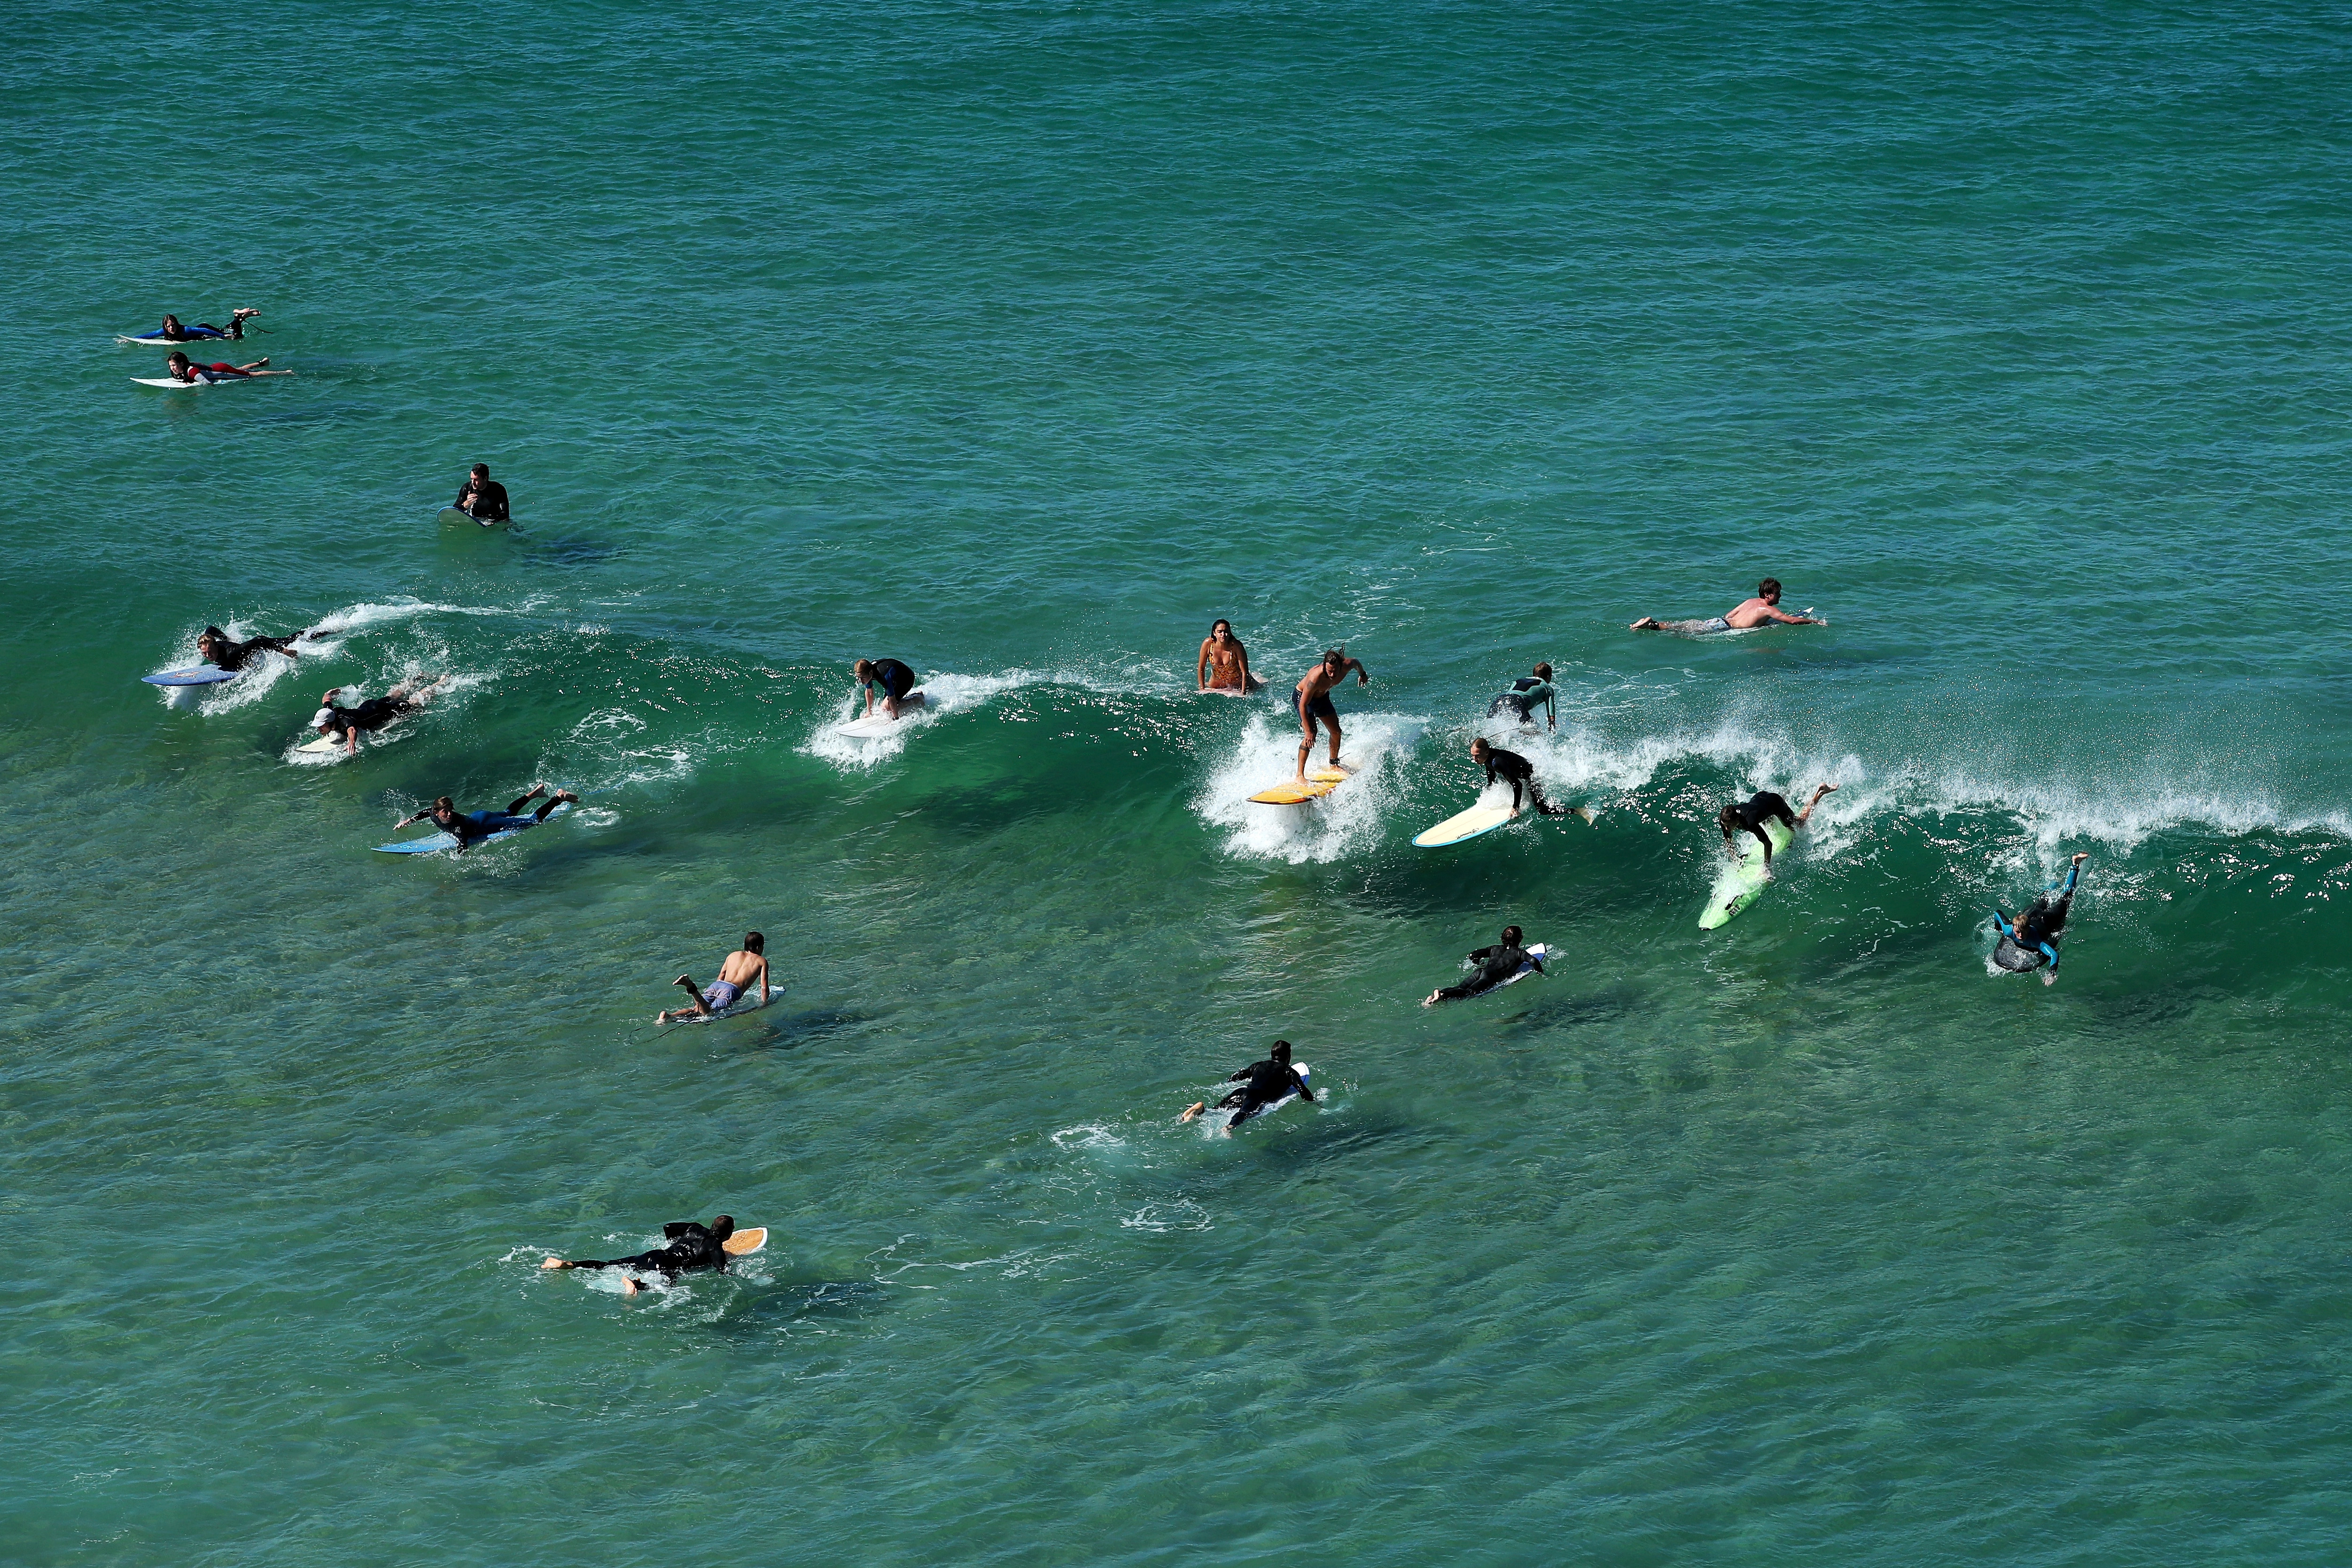 Surfers ride waves at Freshwater Beach in Sydney on on April 5.